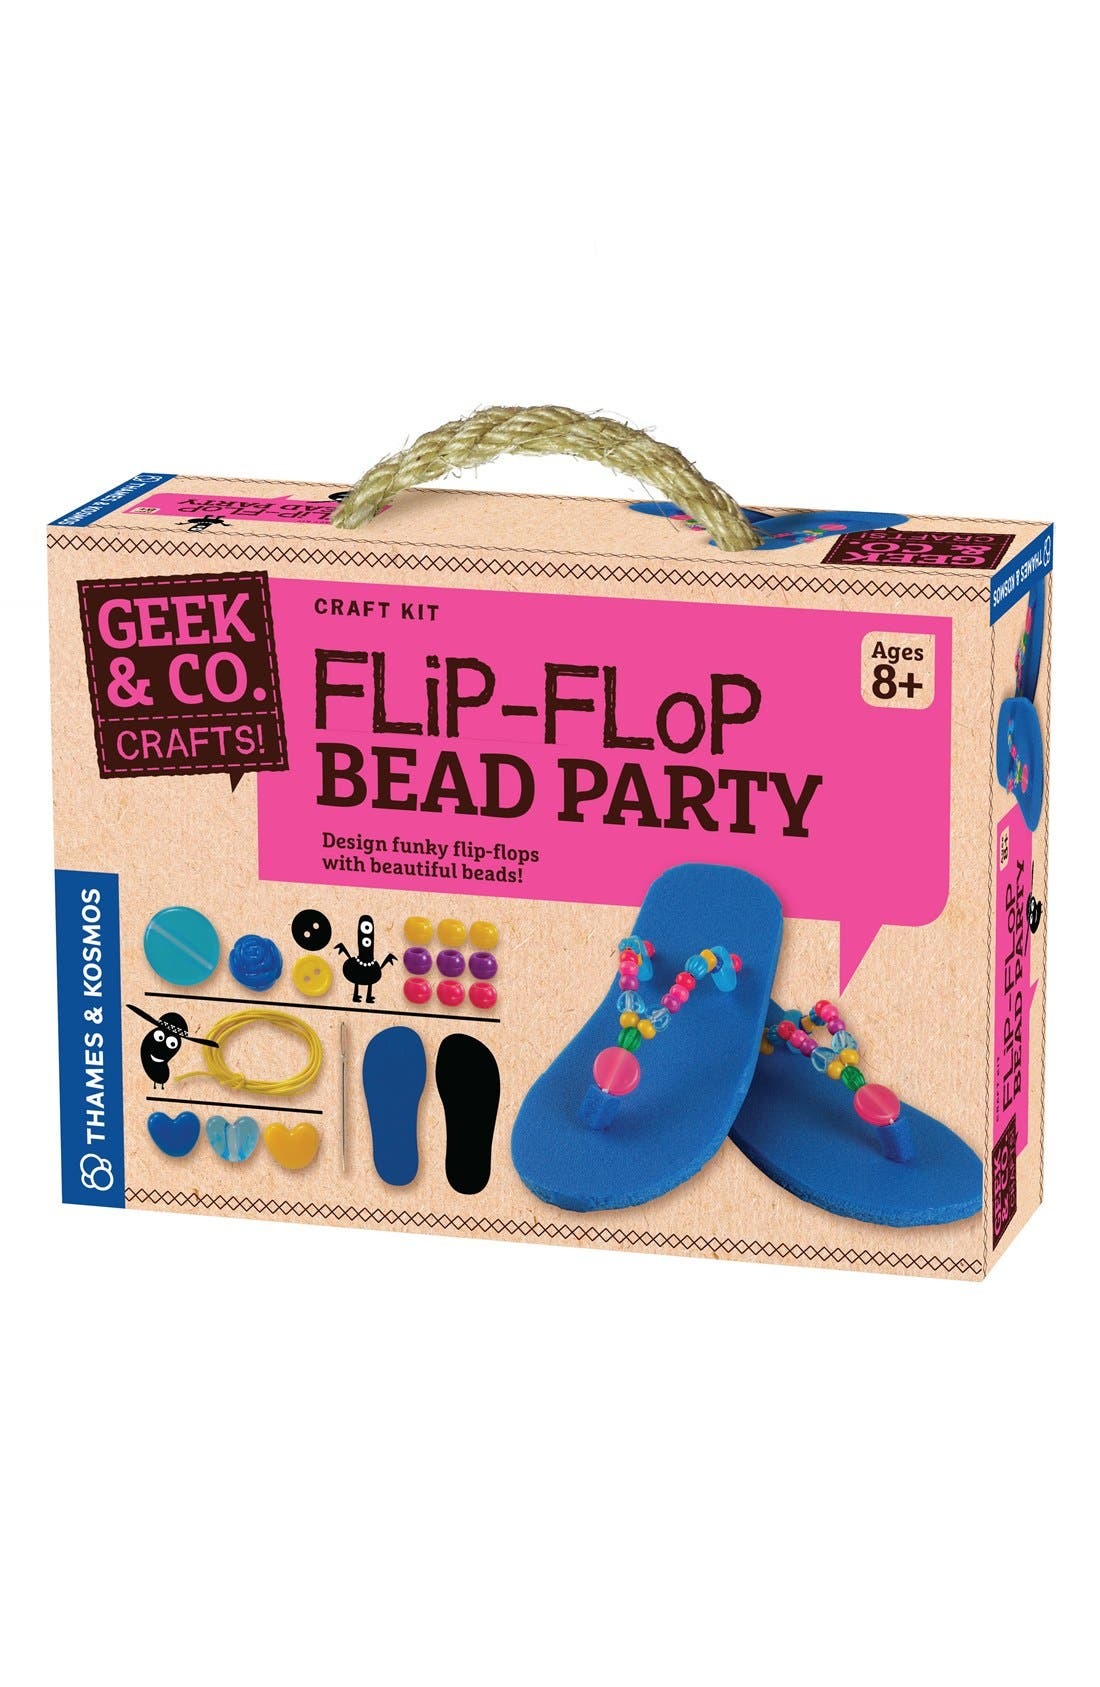 Thames & Kosmos 'Flip-Flop Bead Party' Kit